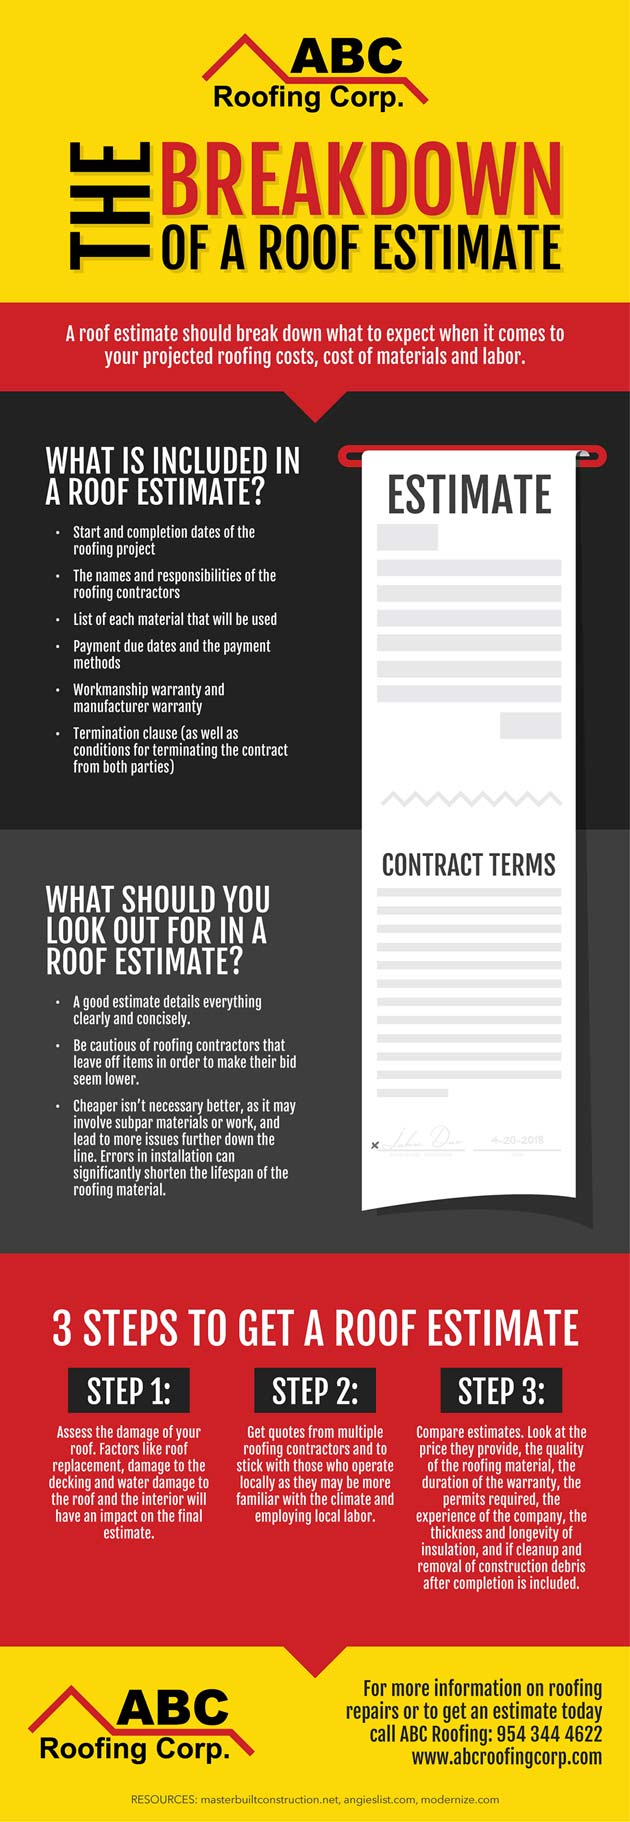 The Breakdown Of A Roof Estimate (Infographic)